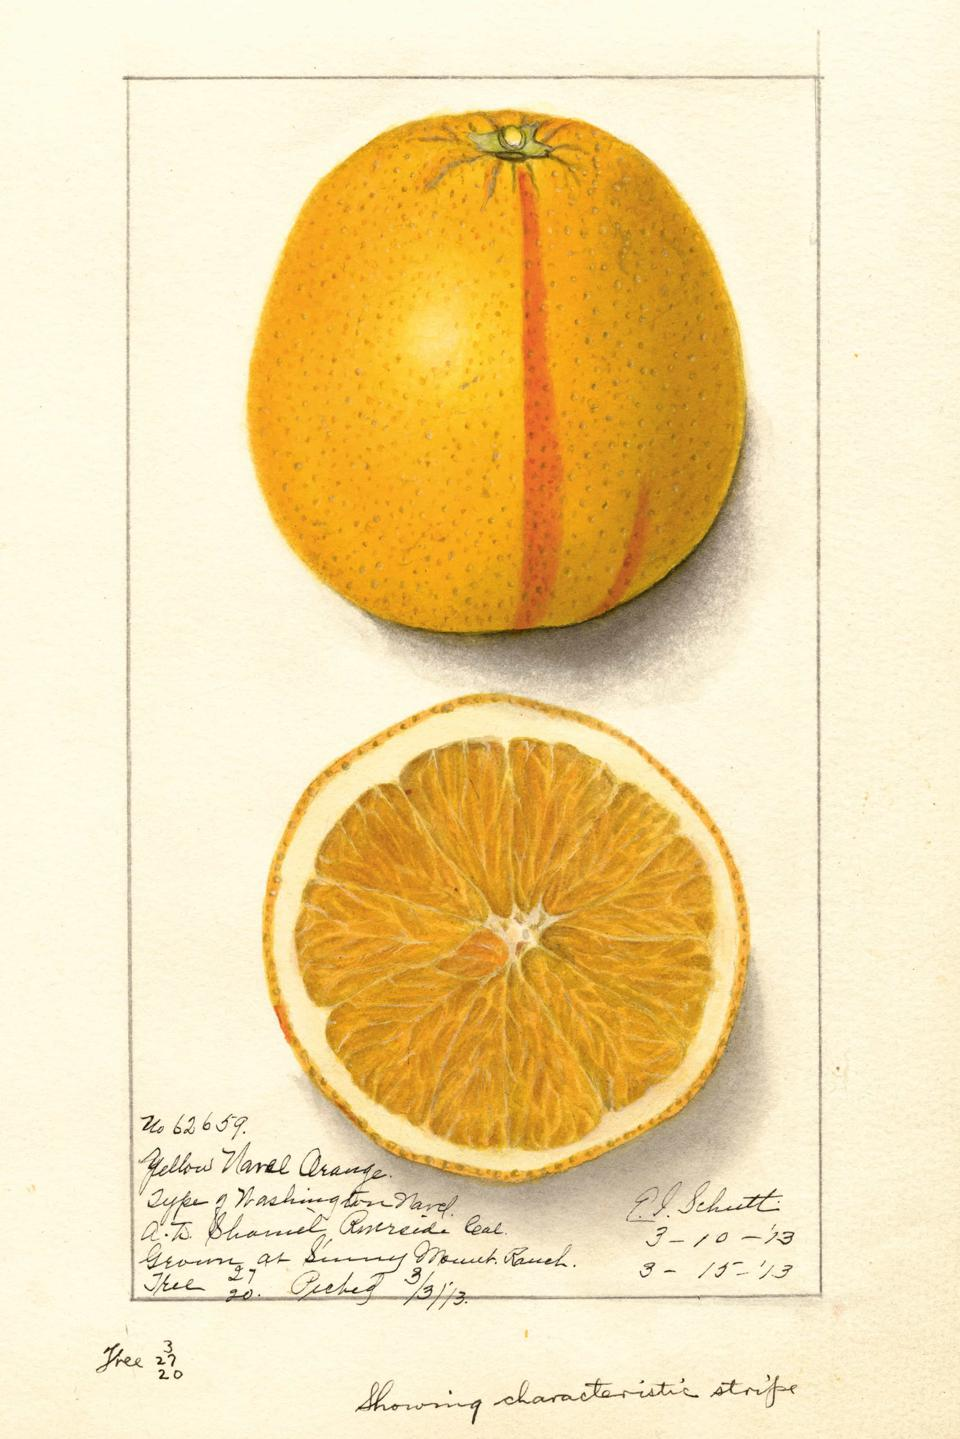 Orange, Washington Navel. By E. I. Schutt, 1913. Image from An Illustrated Catalog of American Fruits & Nuts, published by Atelier Editions. USDA Pomological Watercolor Collection. Courtesy of Special Collections, USDA National Agricultural Library.